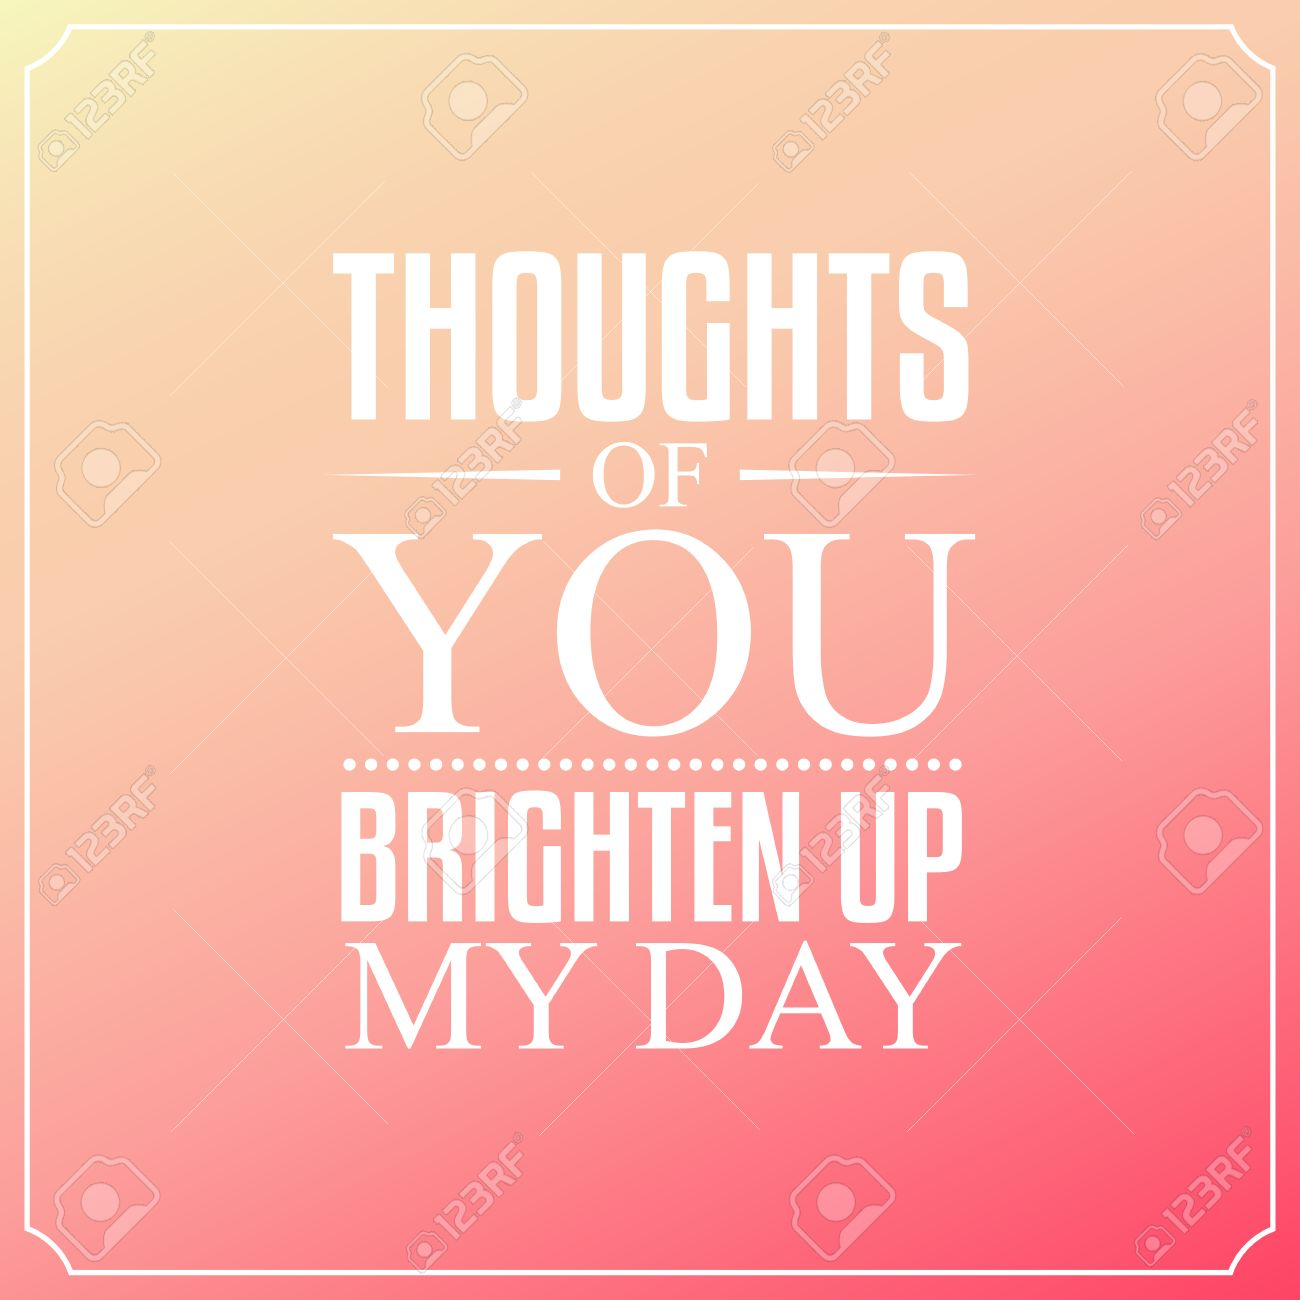 Thoughts Of You Brighten Up My Day Quotes Typography Background